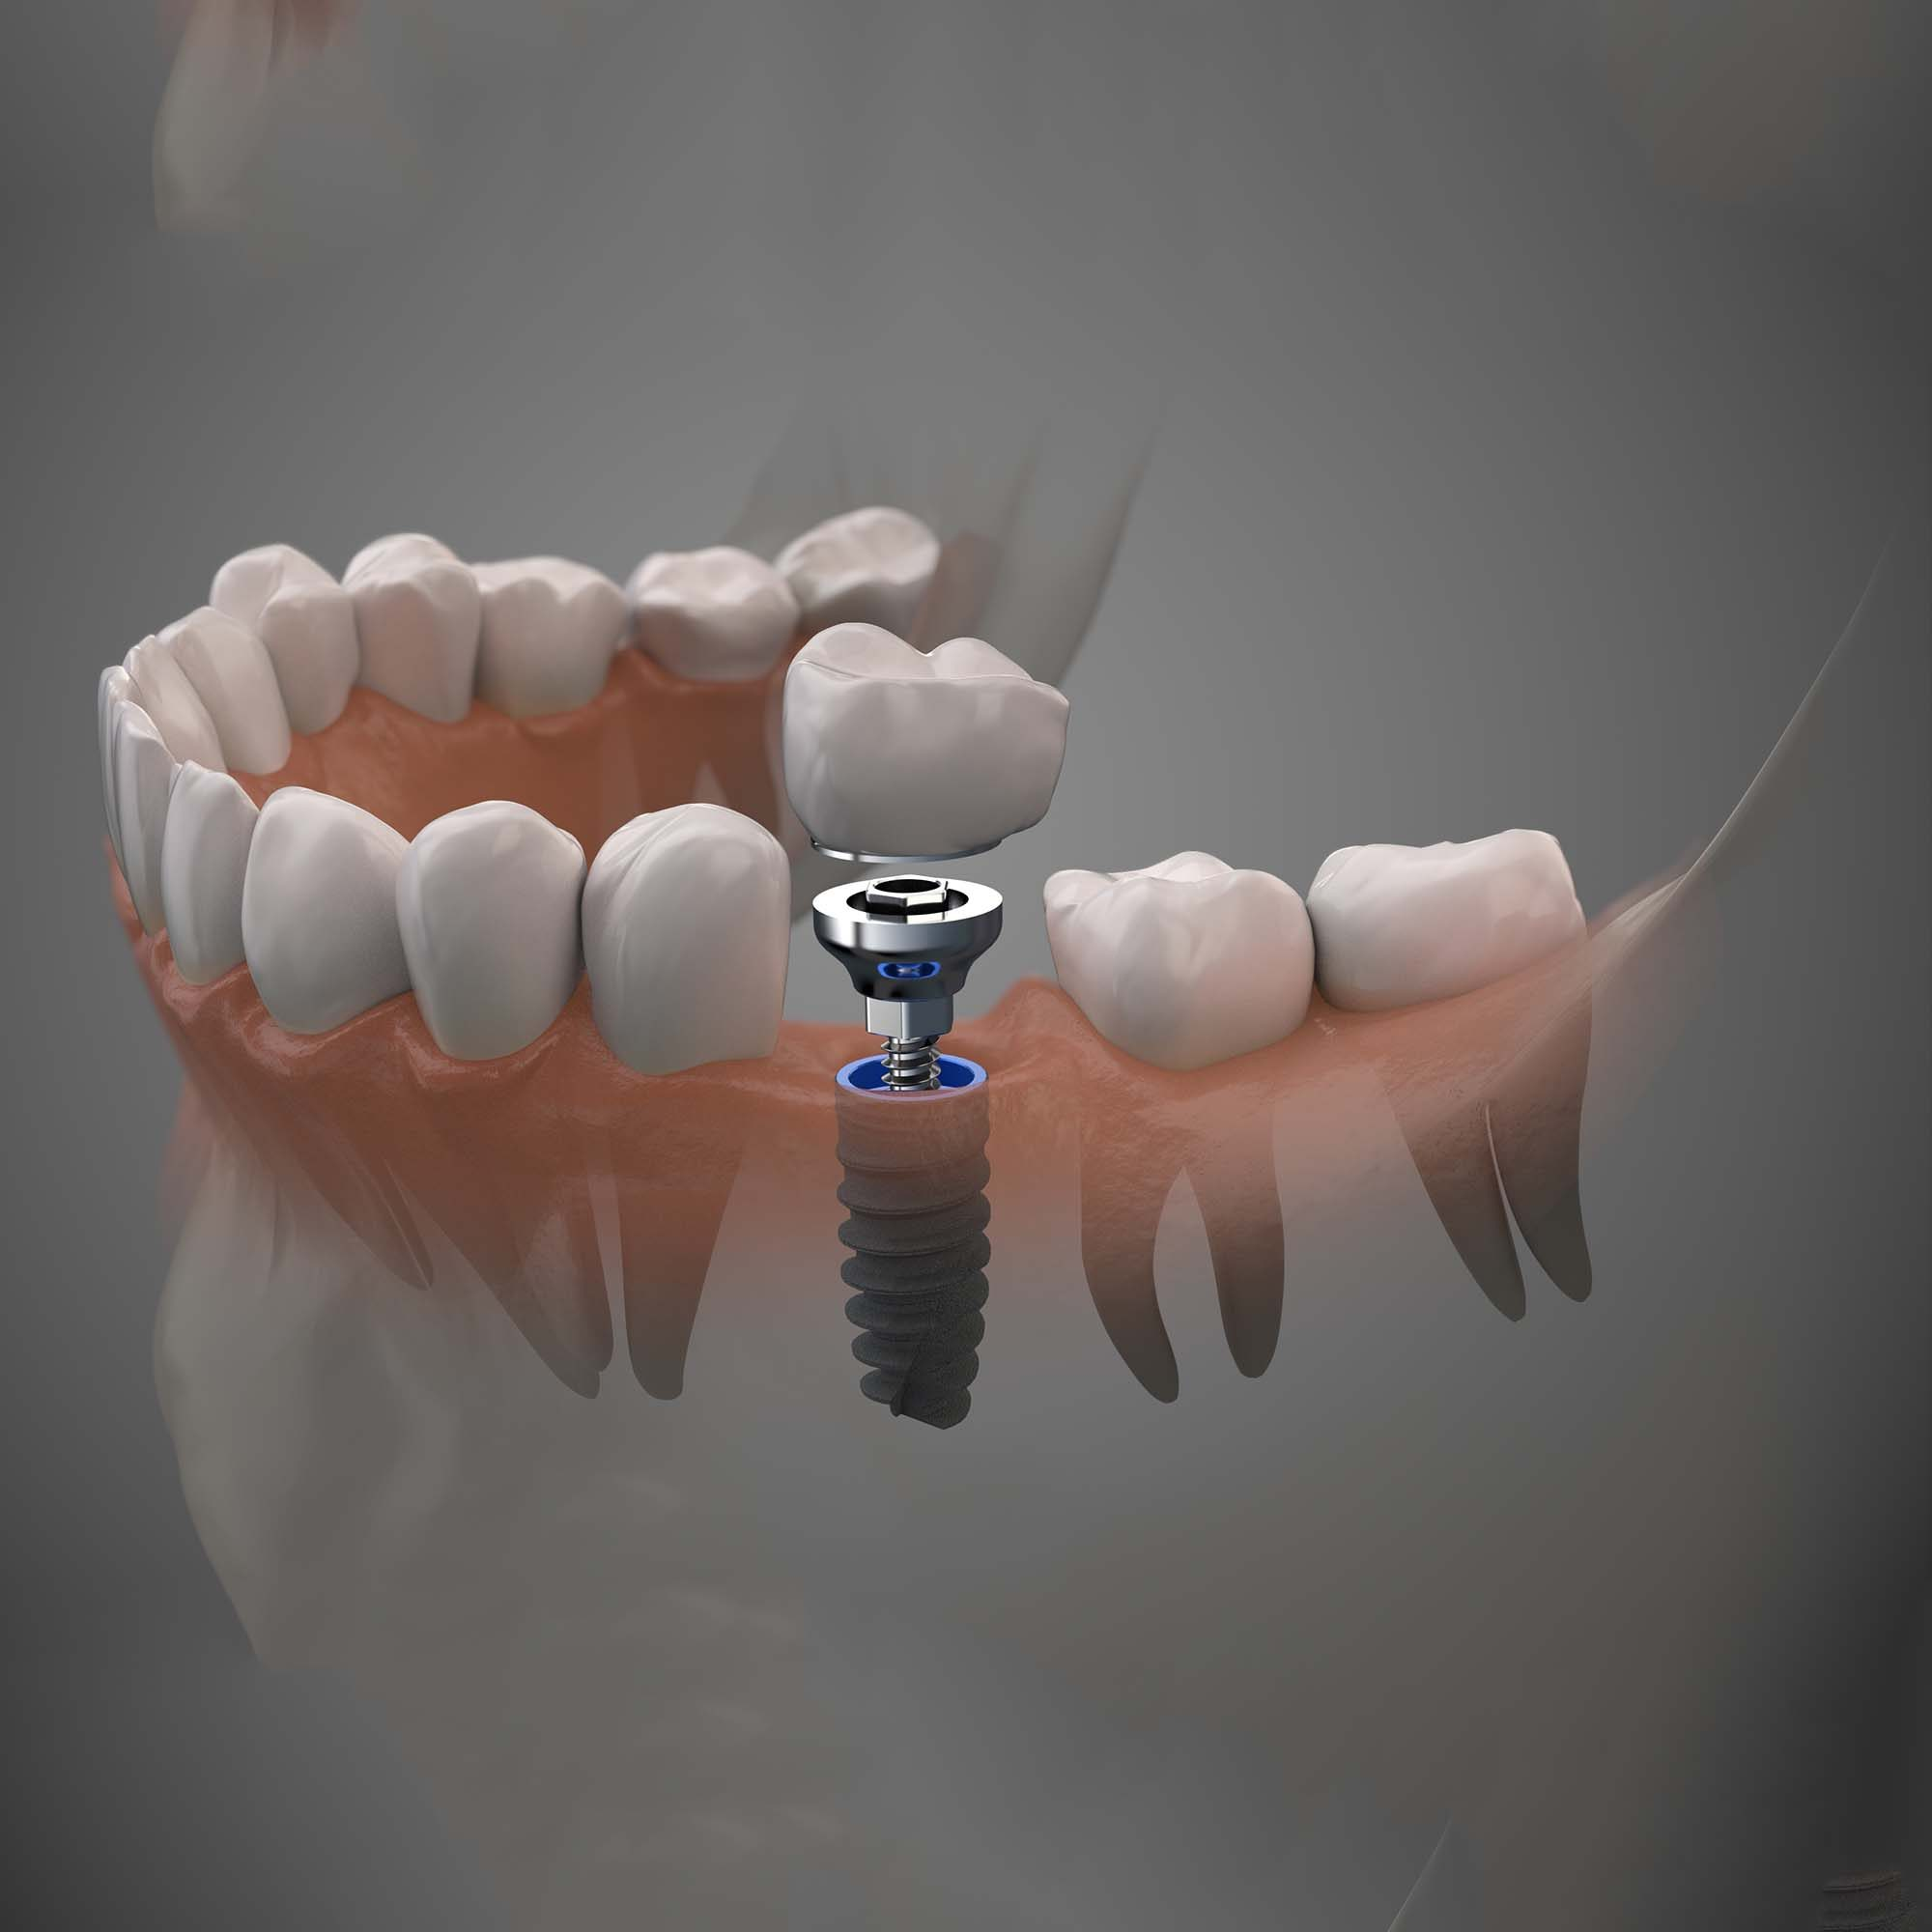 Close up of a Dental  implant model. Selective focus.